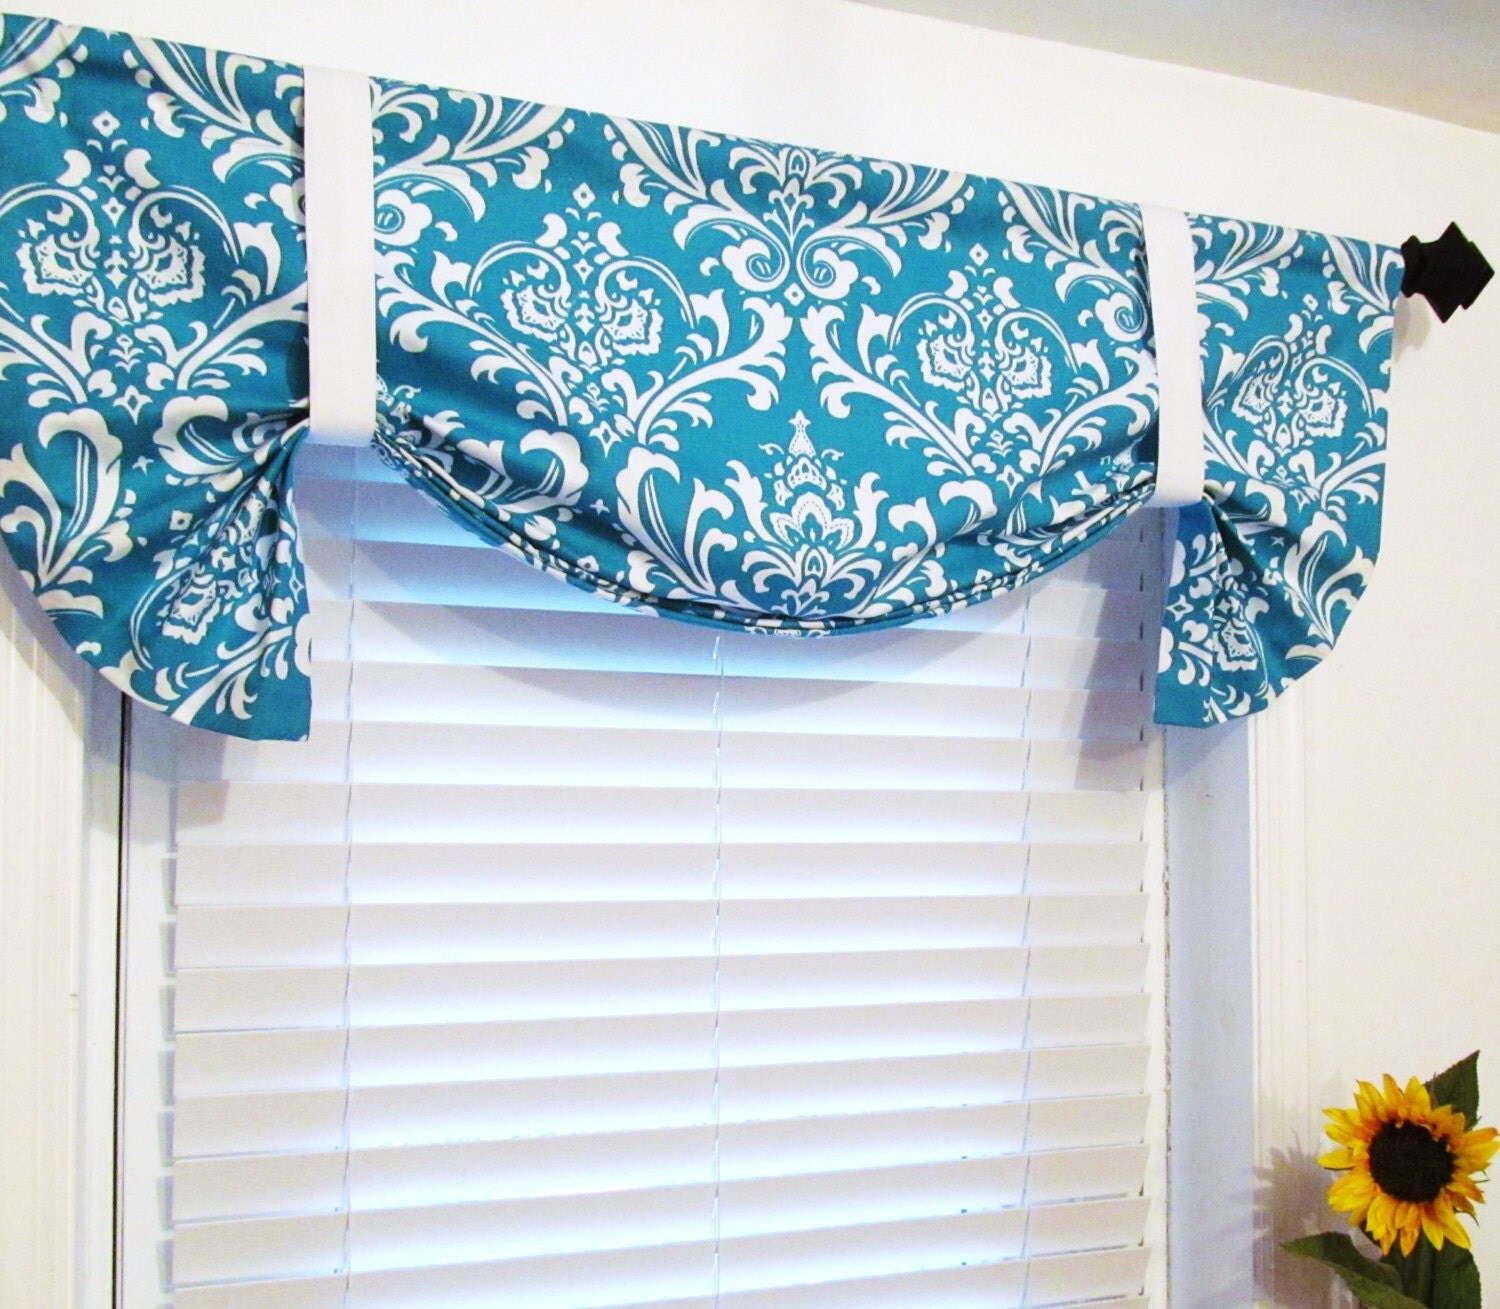 Turquoise Damask Curtain Tie Up Curtain By Supplierofdreams